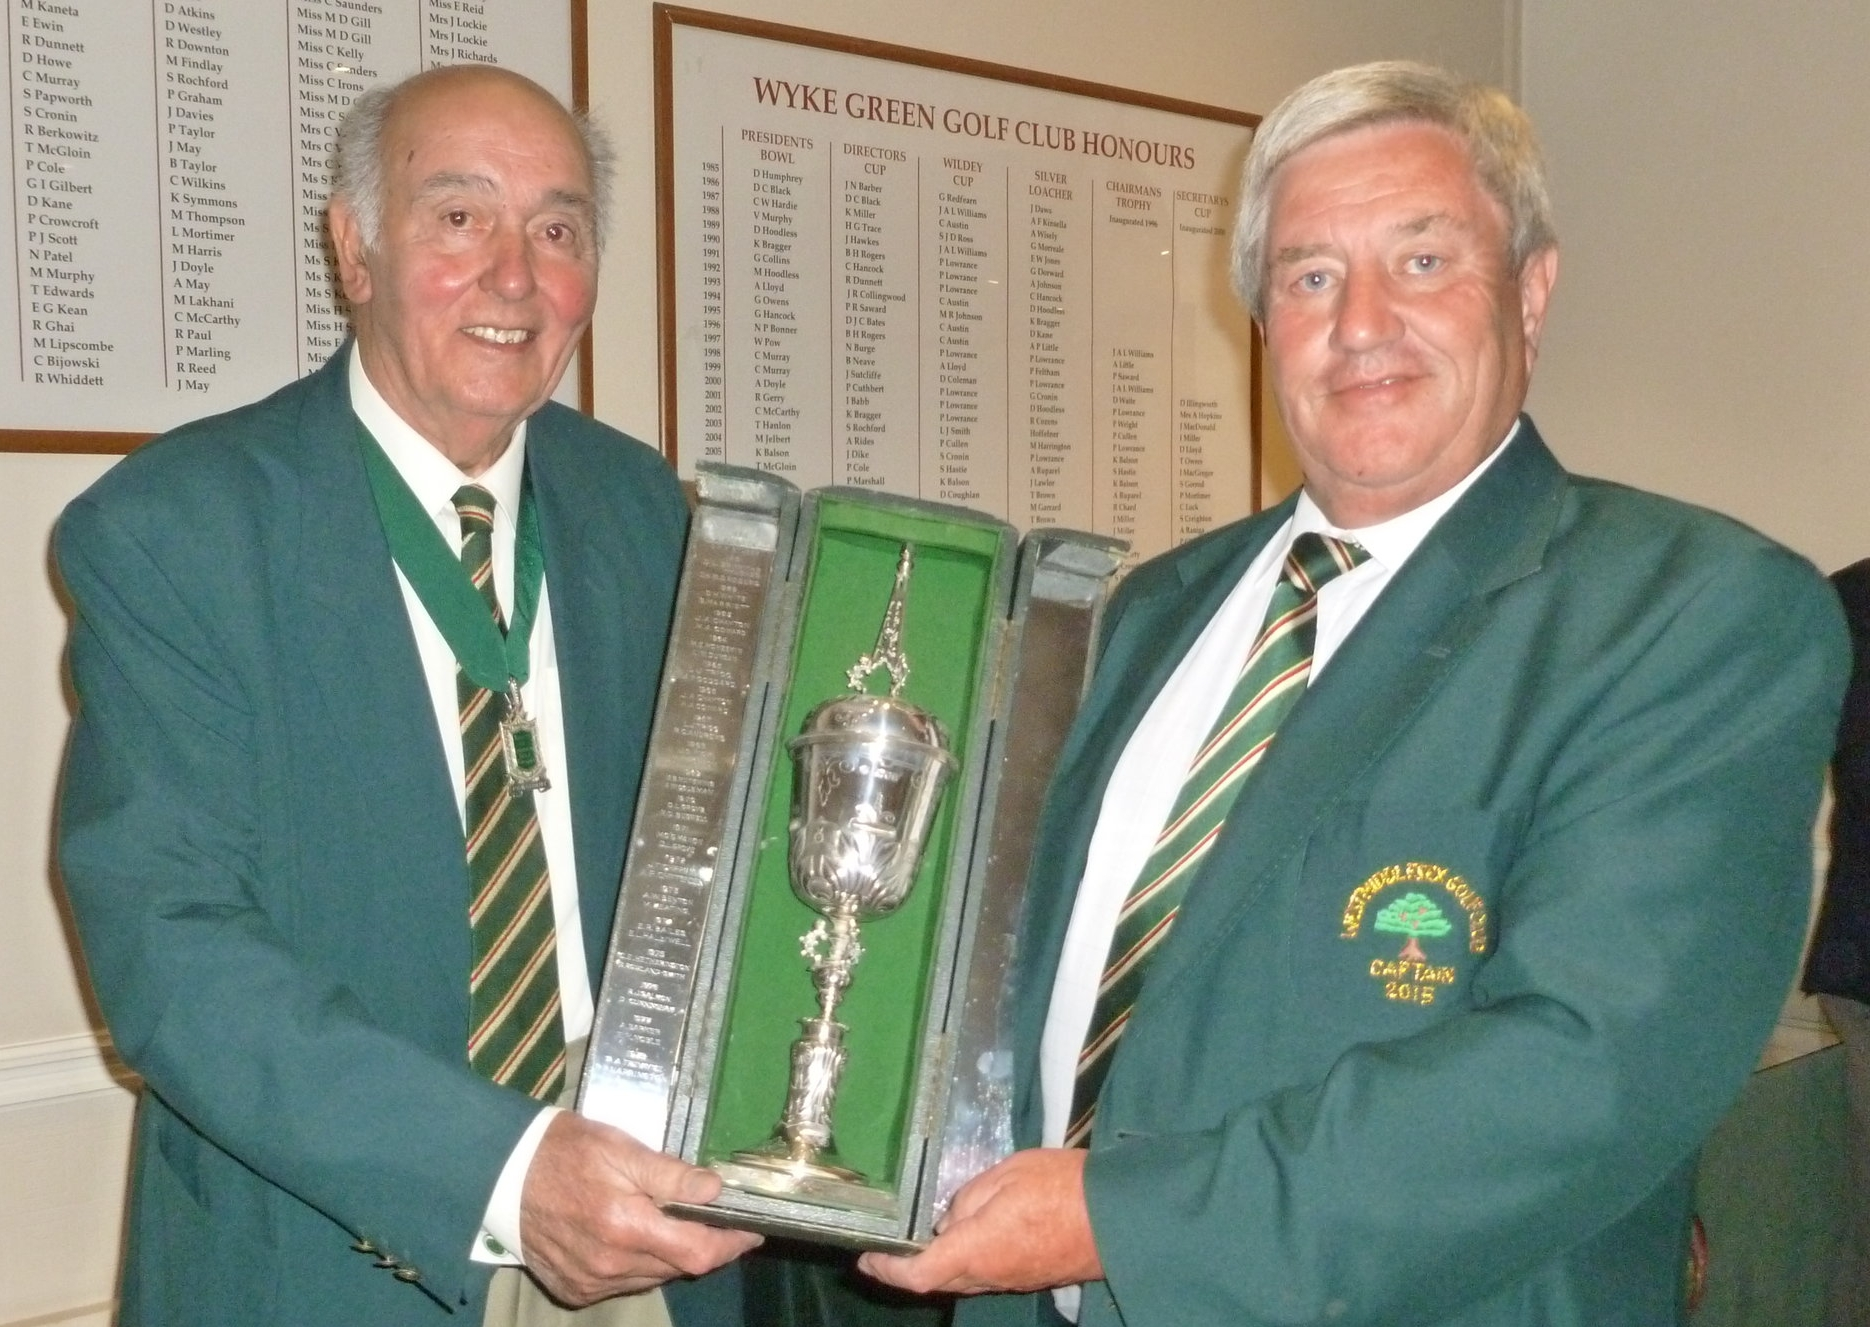 President Harry Judd presenting Gordon Treadway, West Middlesex Golf Club with the Robert Taylor Trophy for the best individual score in the morning round.